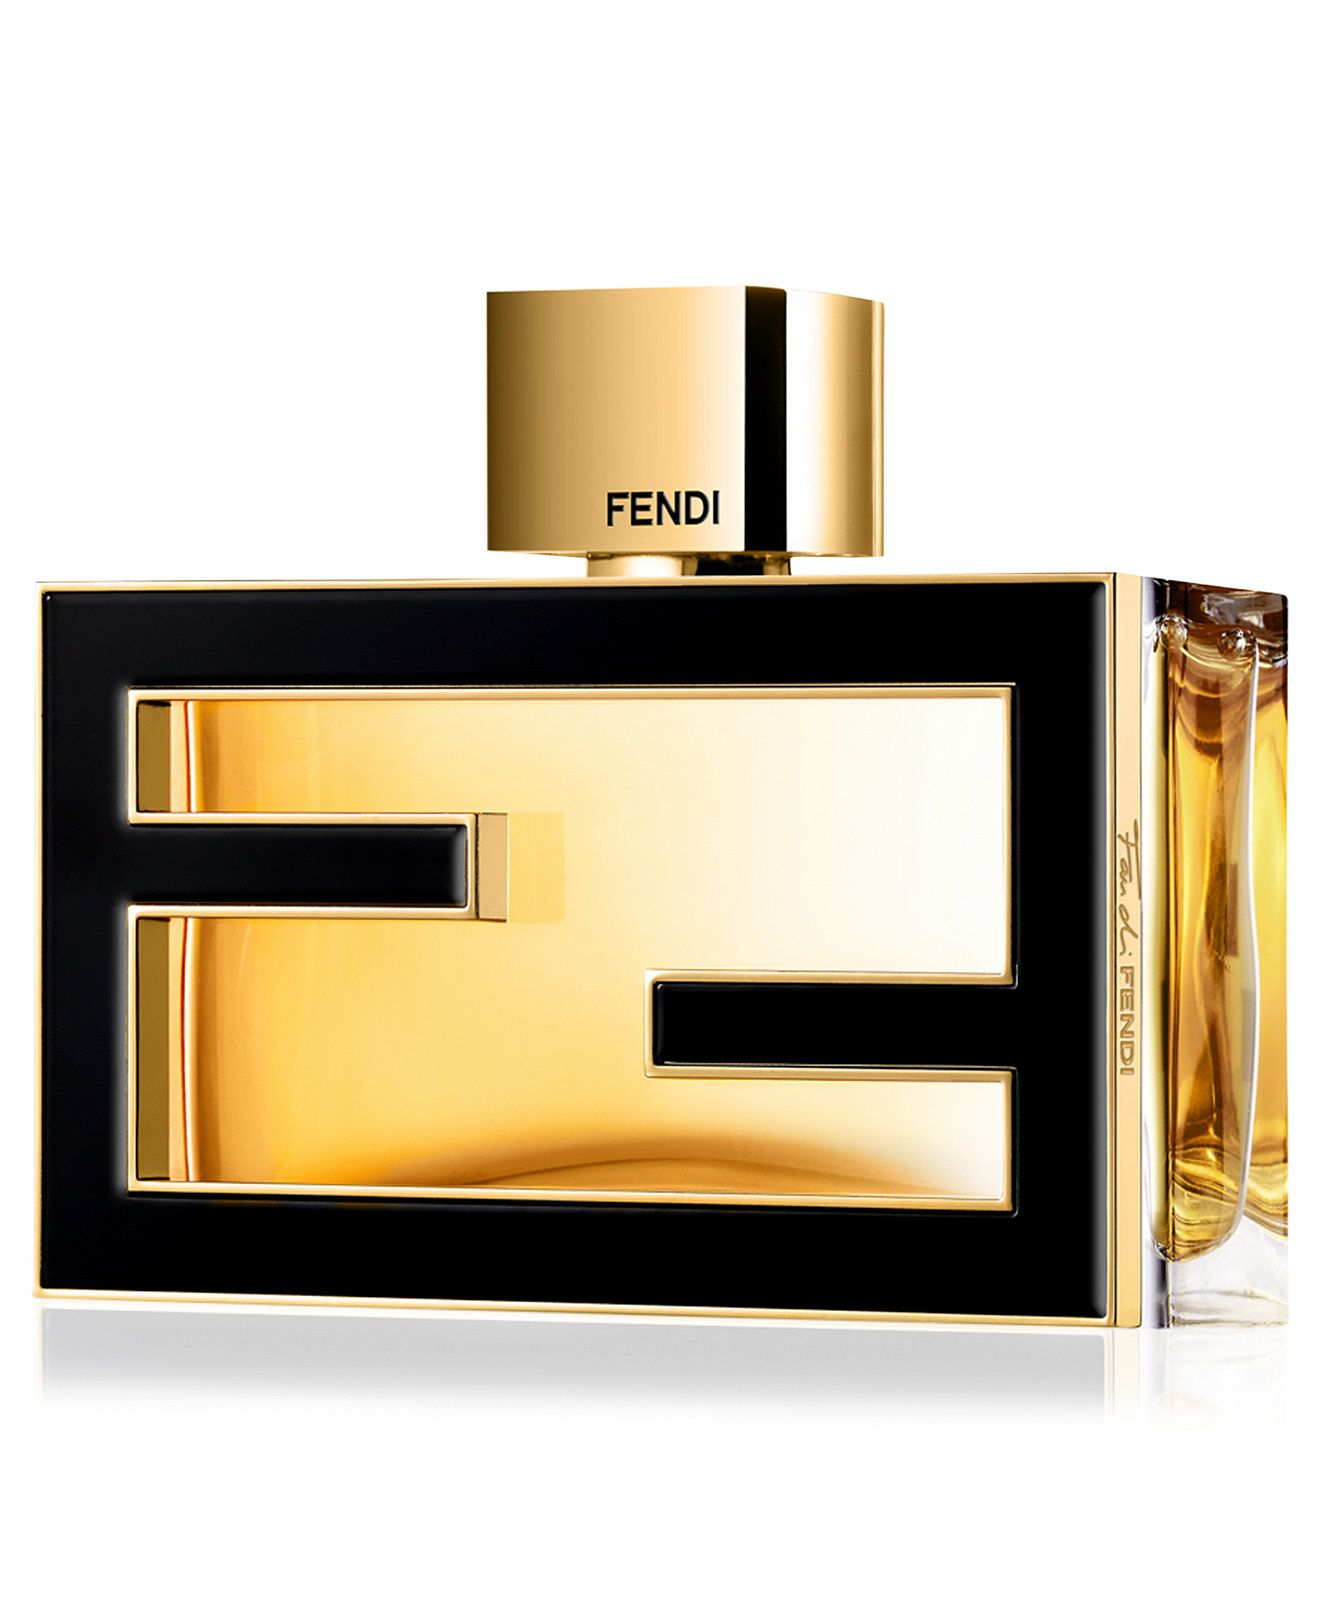 Fan Di Fendi Launches Eau De Toilette